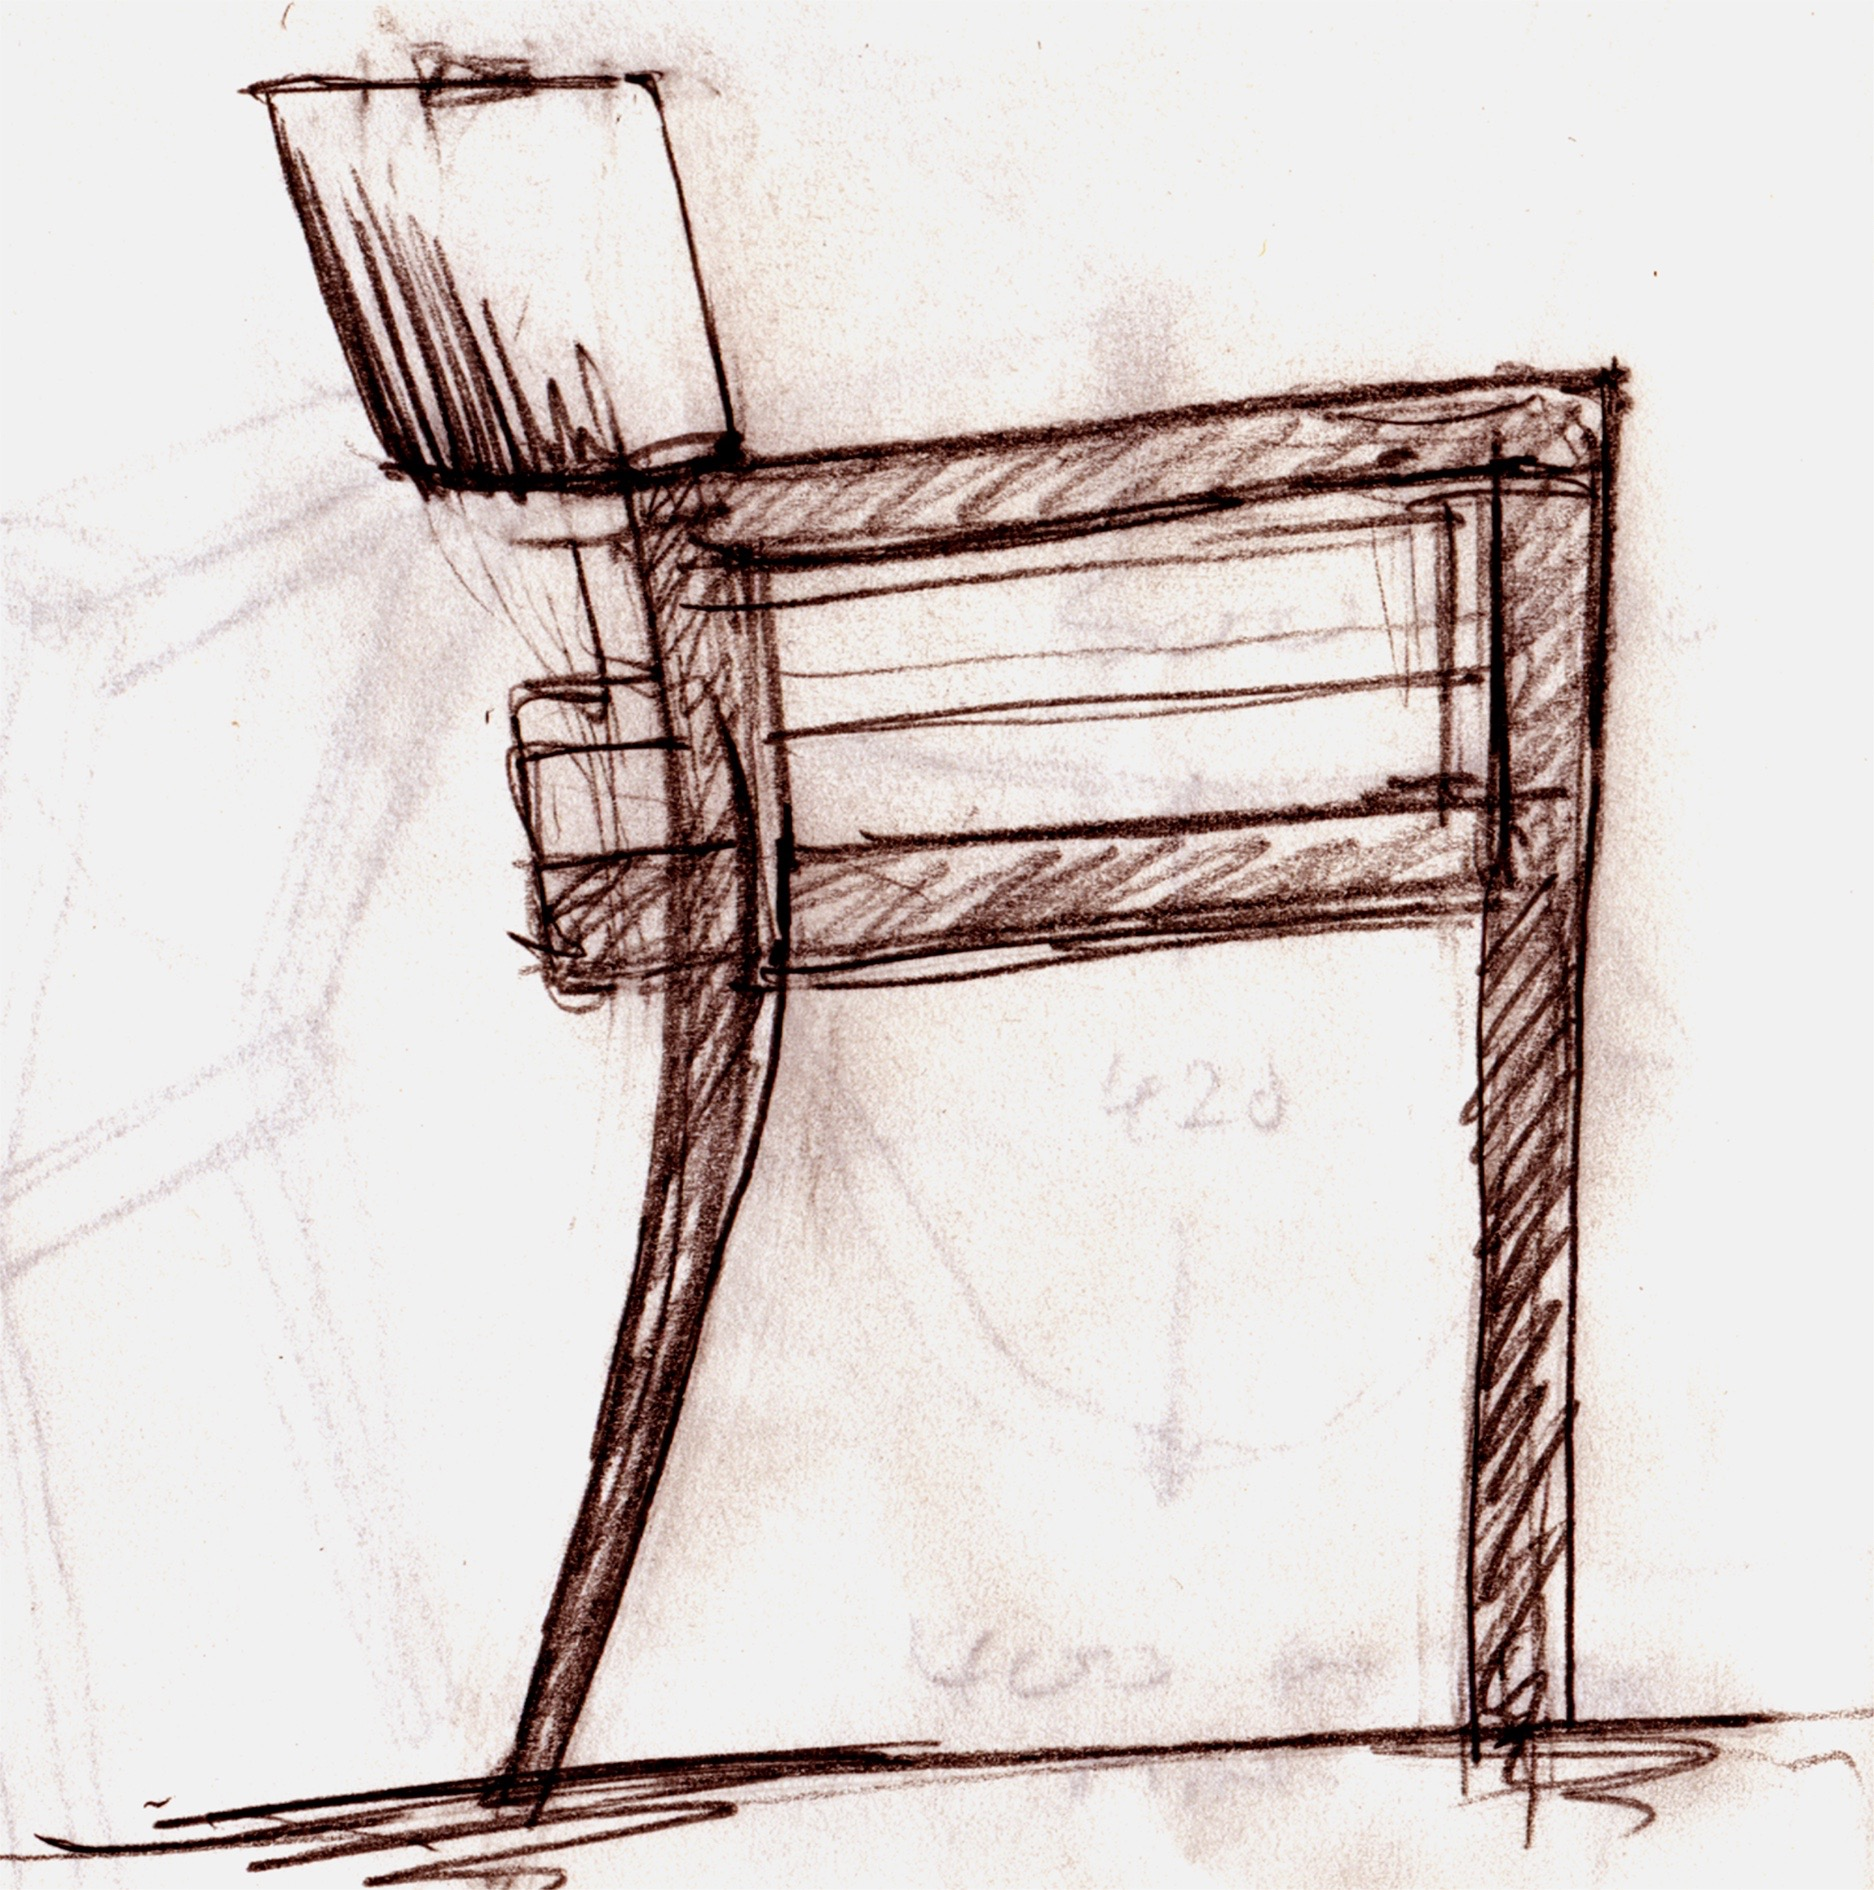 Wenge chair sketch